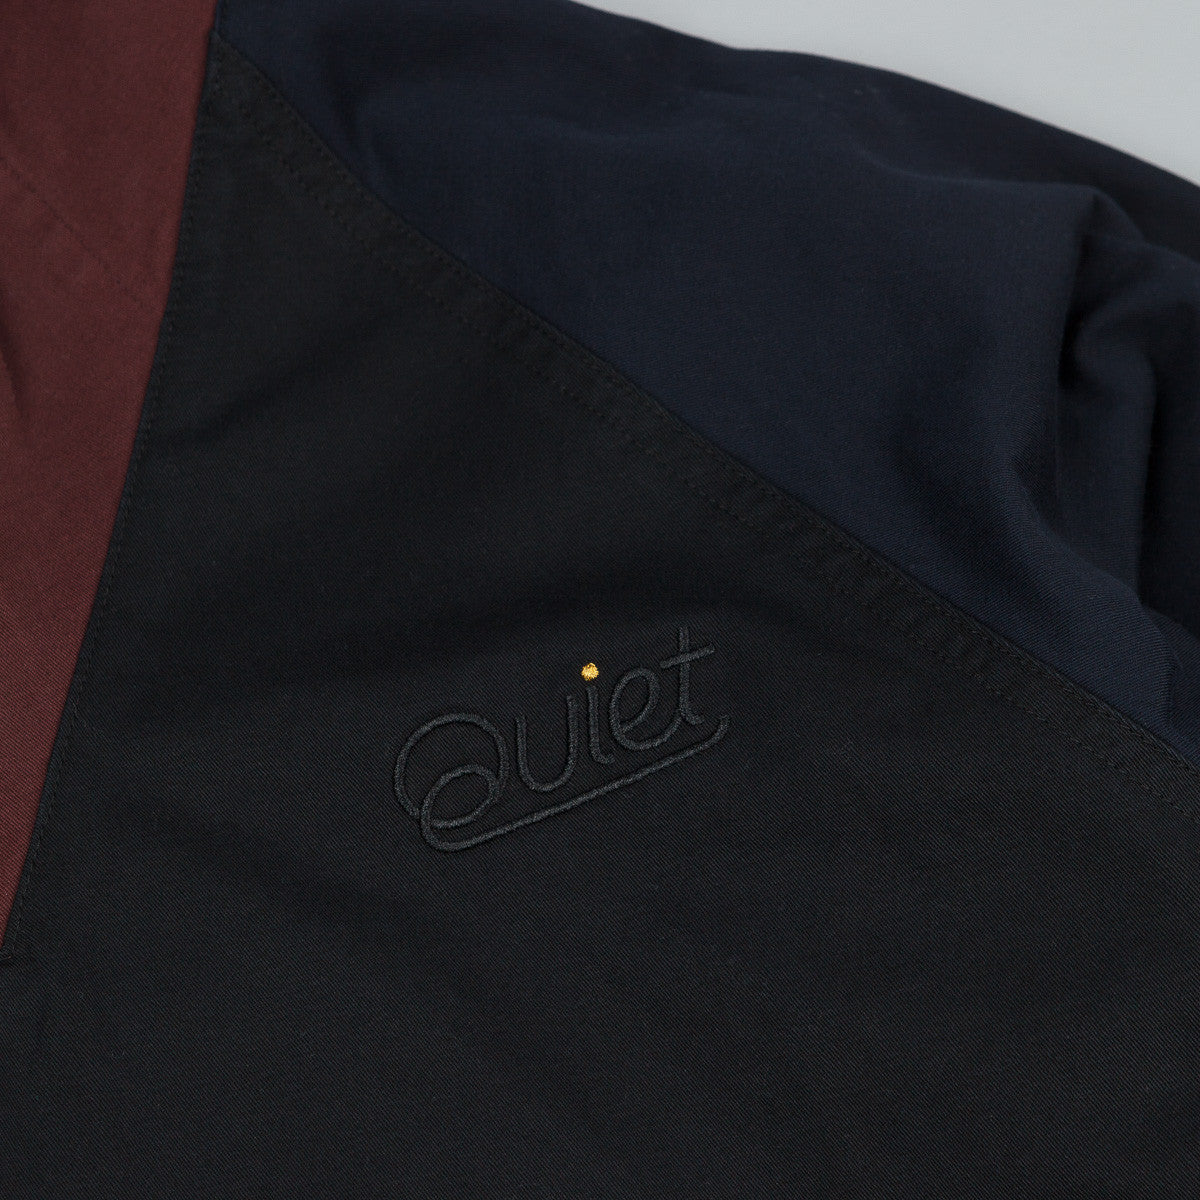 The Quiet Life Contrast Windy Pullover Jacket - Black /  Maroon / Navy